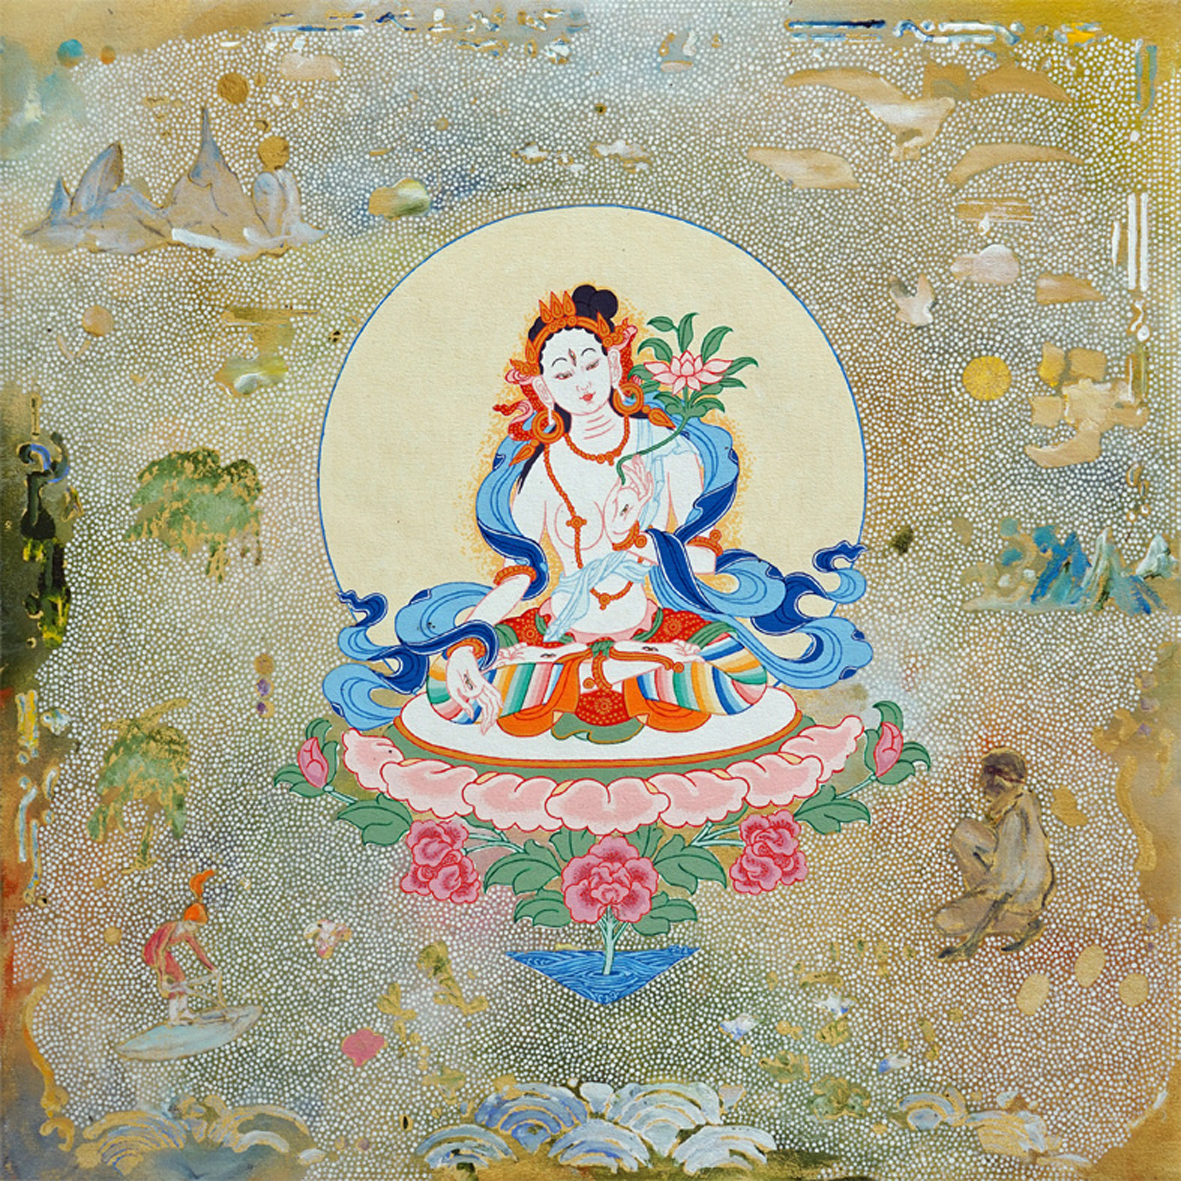 White Tara. 2018. with Daniel Bogunovic. Acrylic on canvas. 60 x 60 cm $ 2,000 SOLD